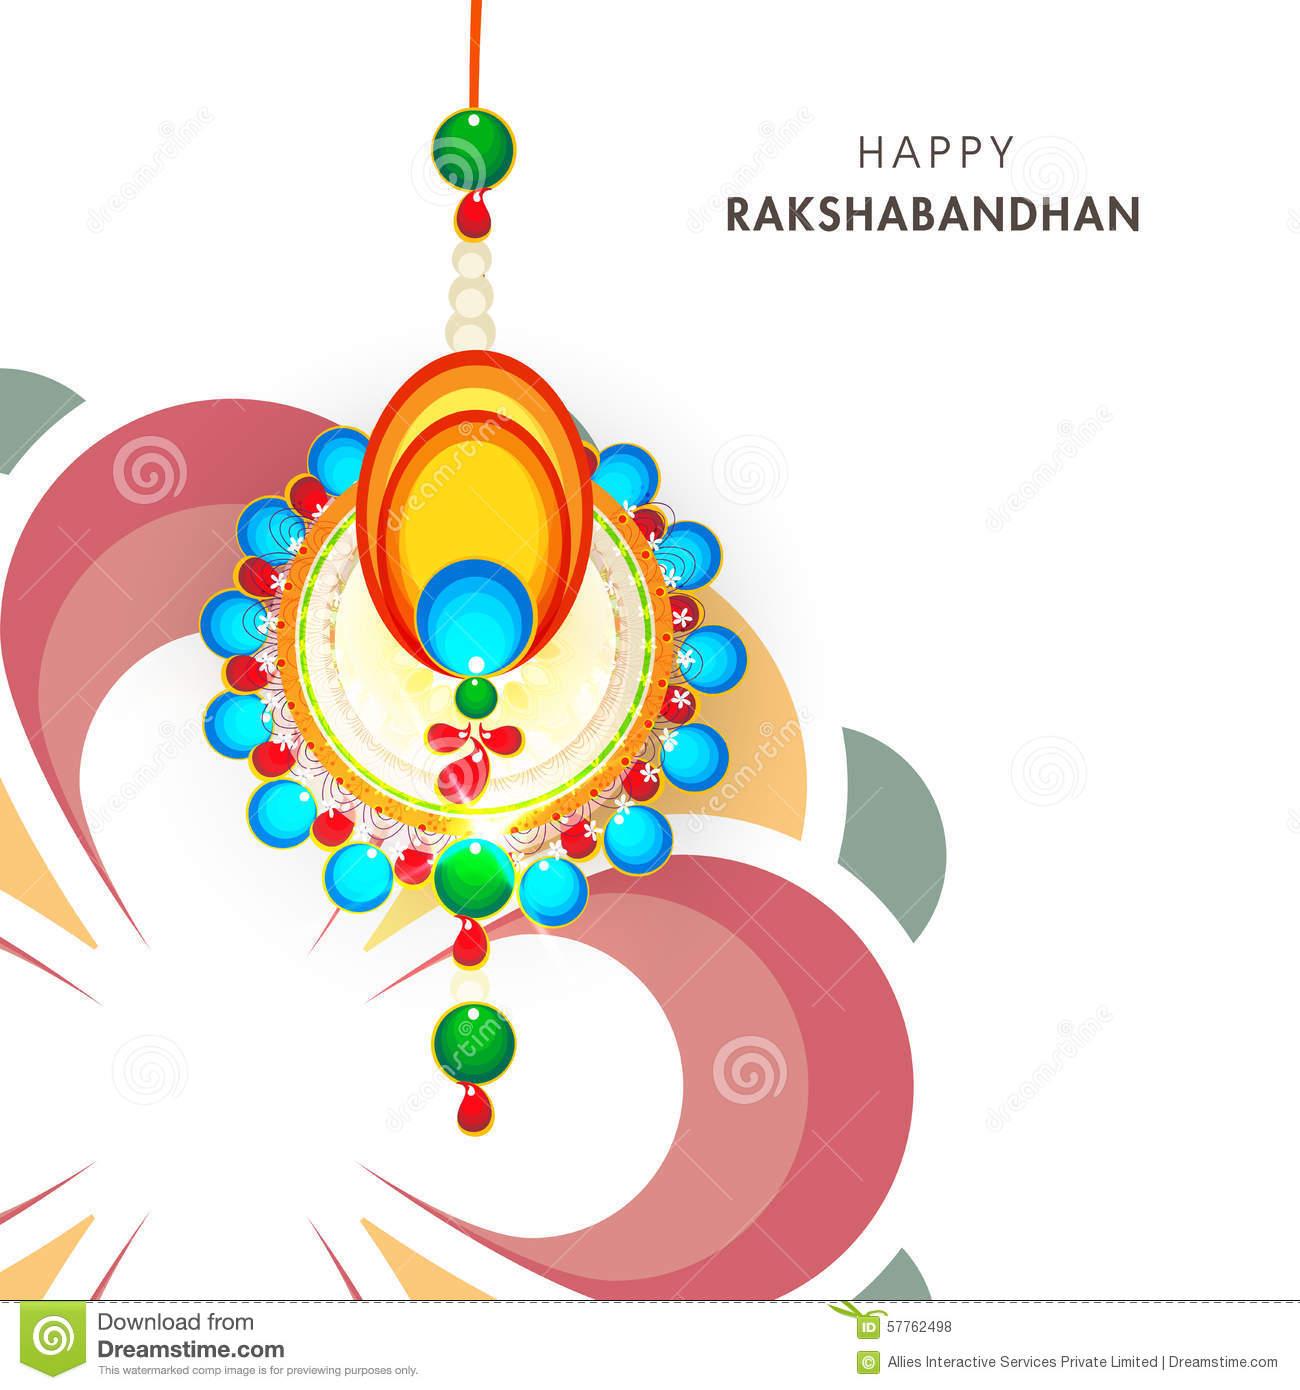 Greeting card for raksha bandhan celebration stock illustration greeting card for raksha bandhan celebration kristyandbryce Image collections